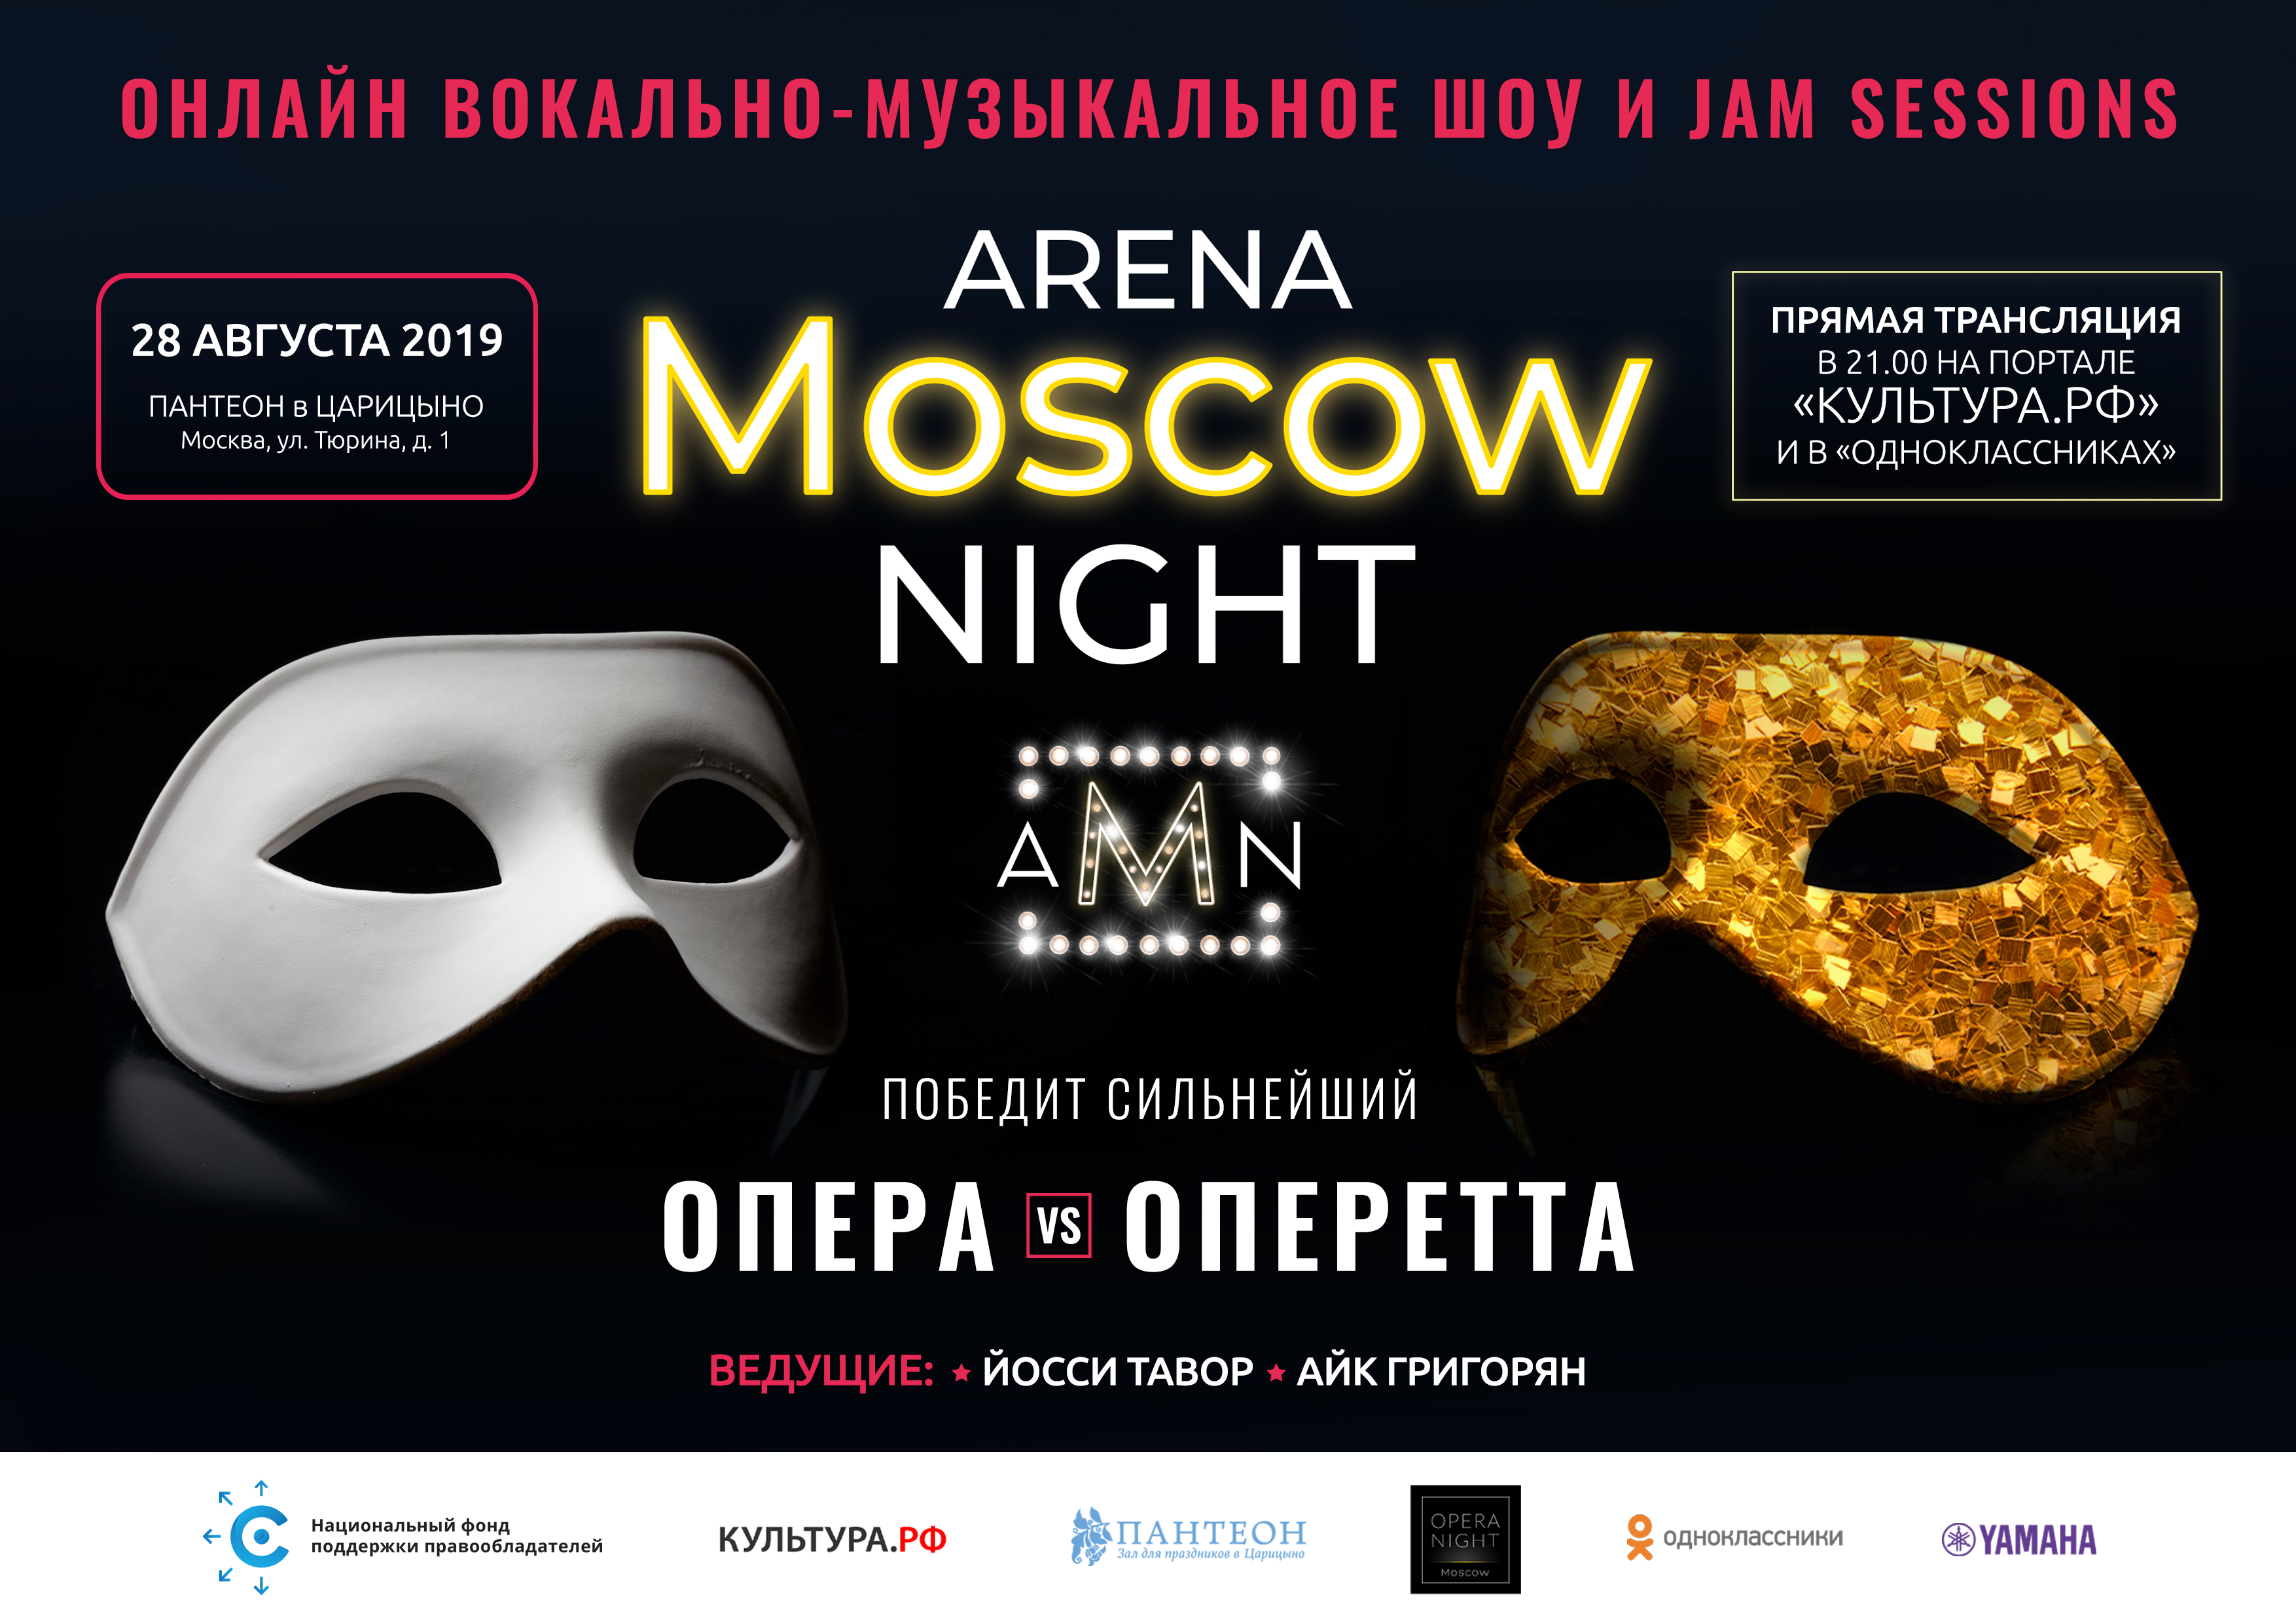 moscow-arena-night